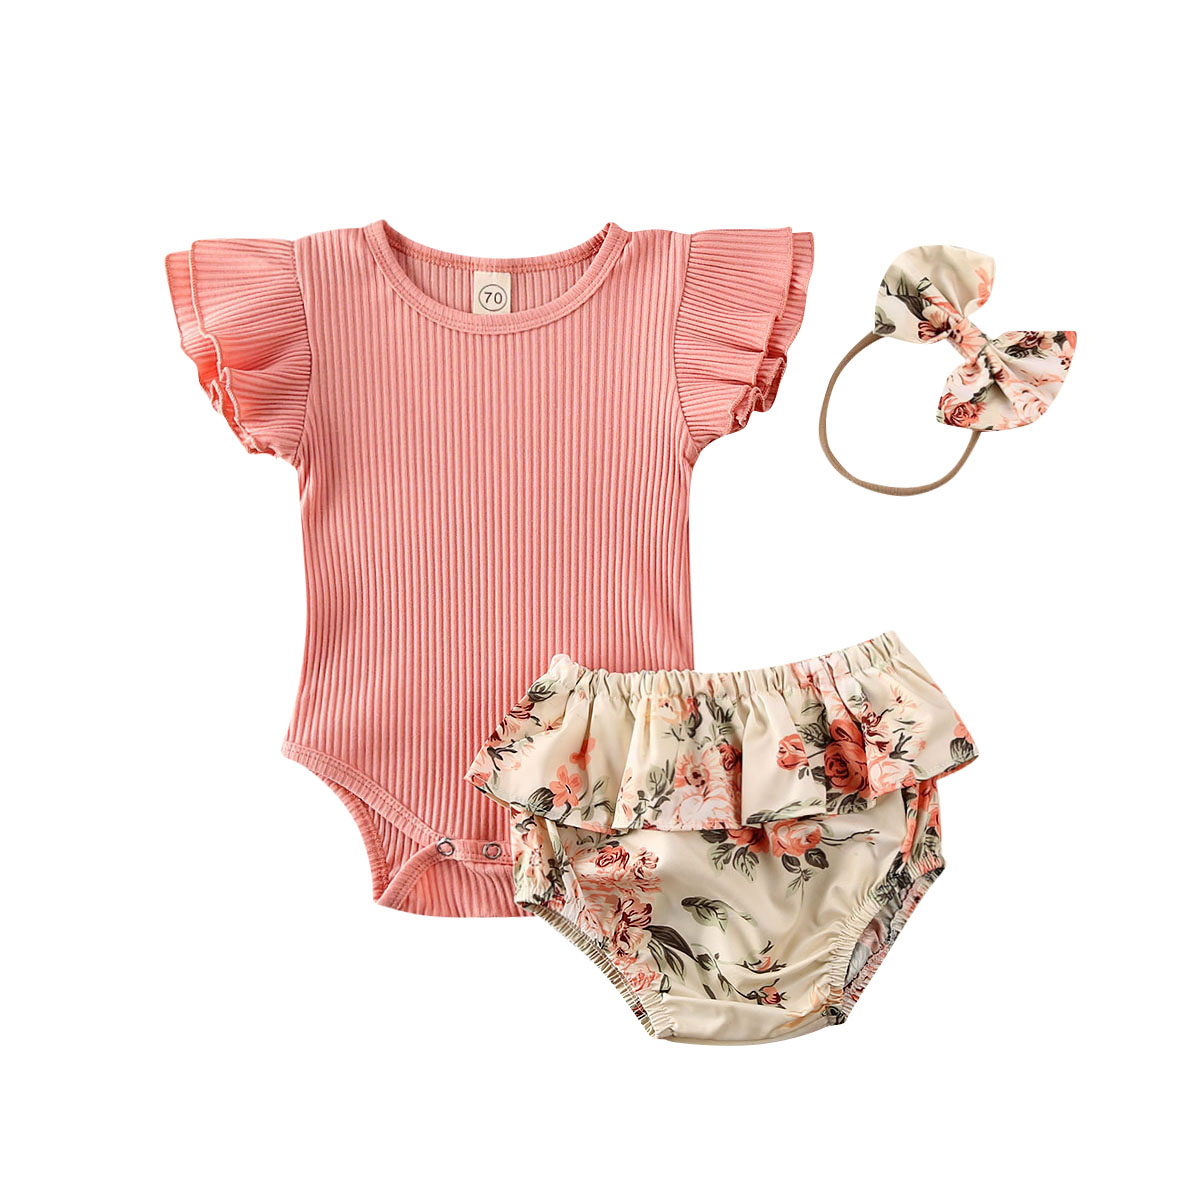 3Pcs Infant Kids Baby Girls Clothes Sets Pink Ruffles Sleeve Romper Tops+Flowers Shorts+Headband 0-18M